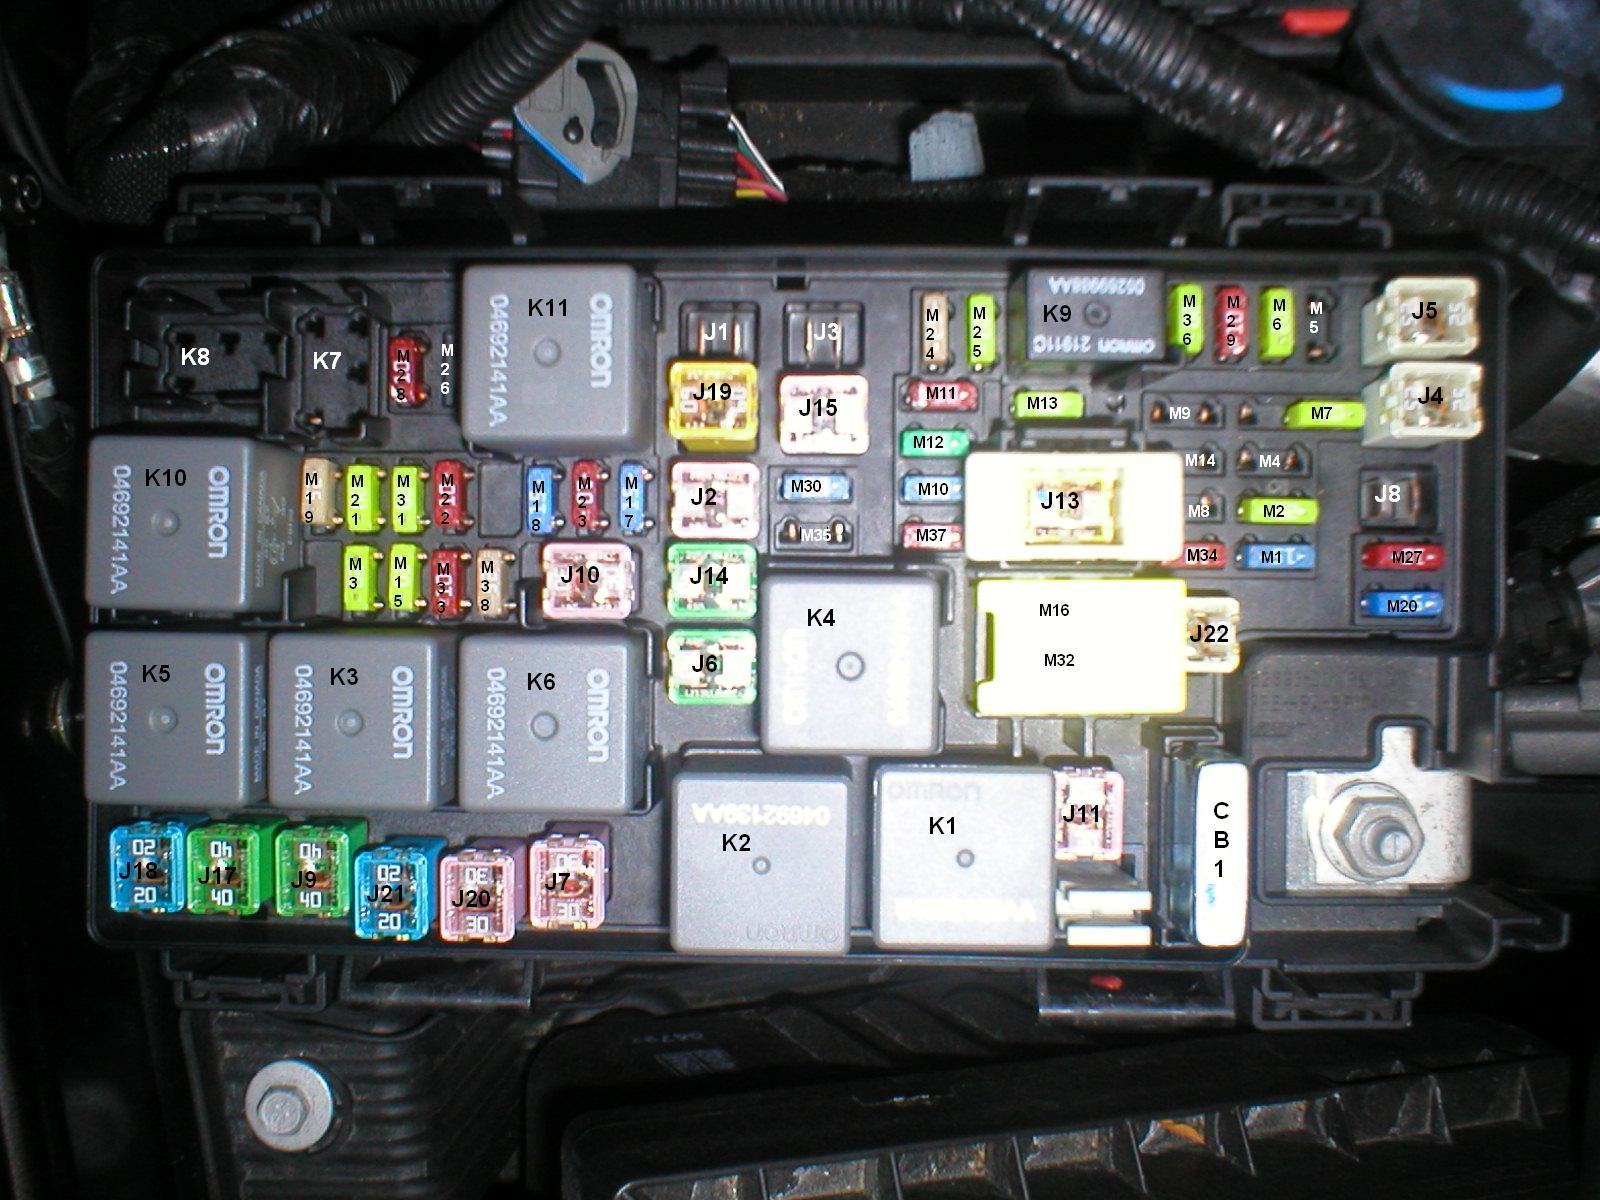 hight resolution of jeep jk fuse box map layout diagram jeepforum com 07 jeep wrangler radio fuse jk fuse box